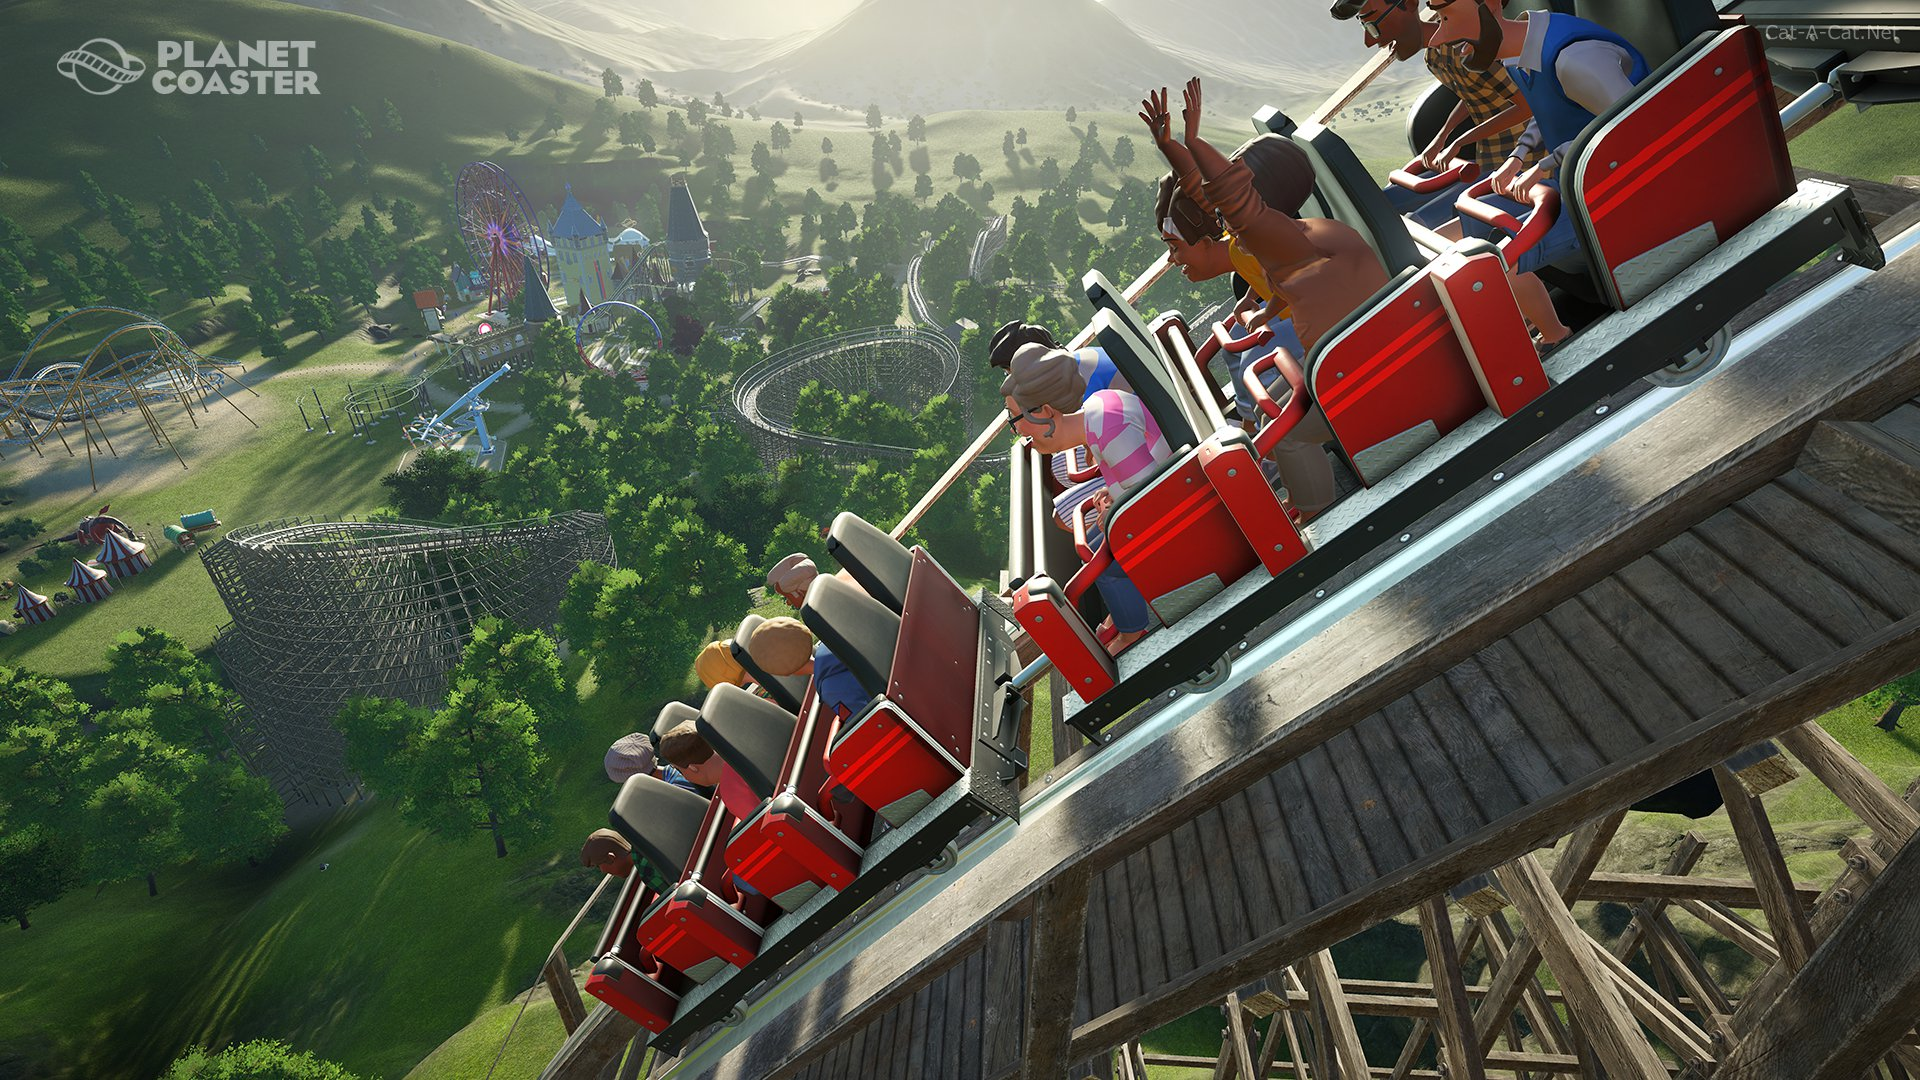 Roller coaster tycoon 1 wont load saved games online